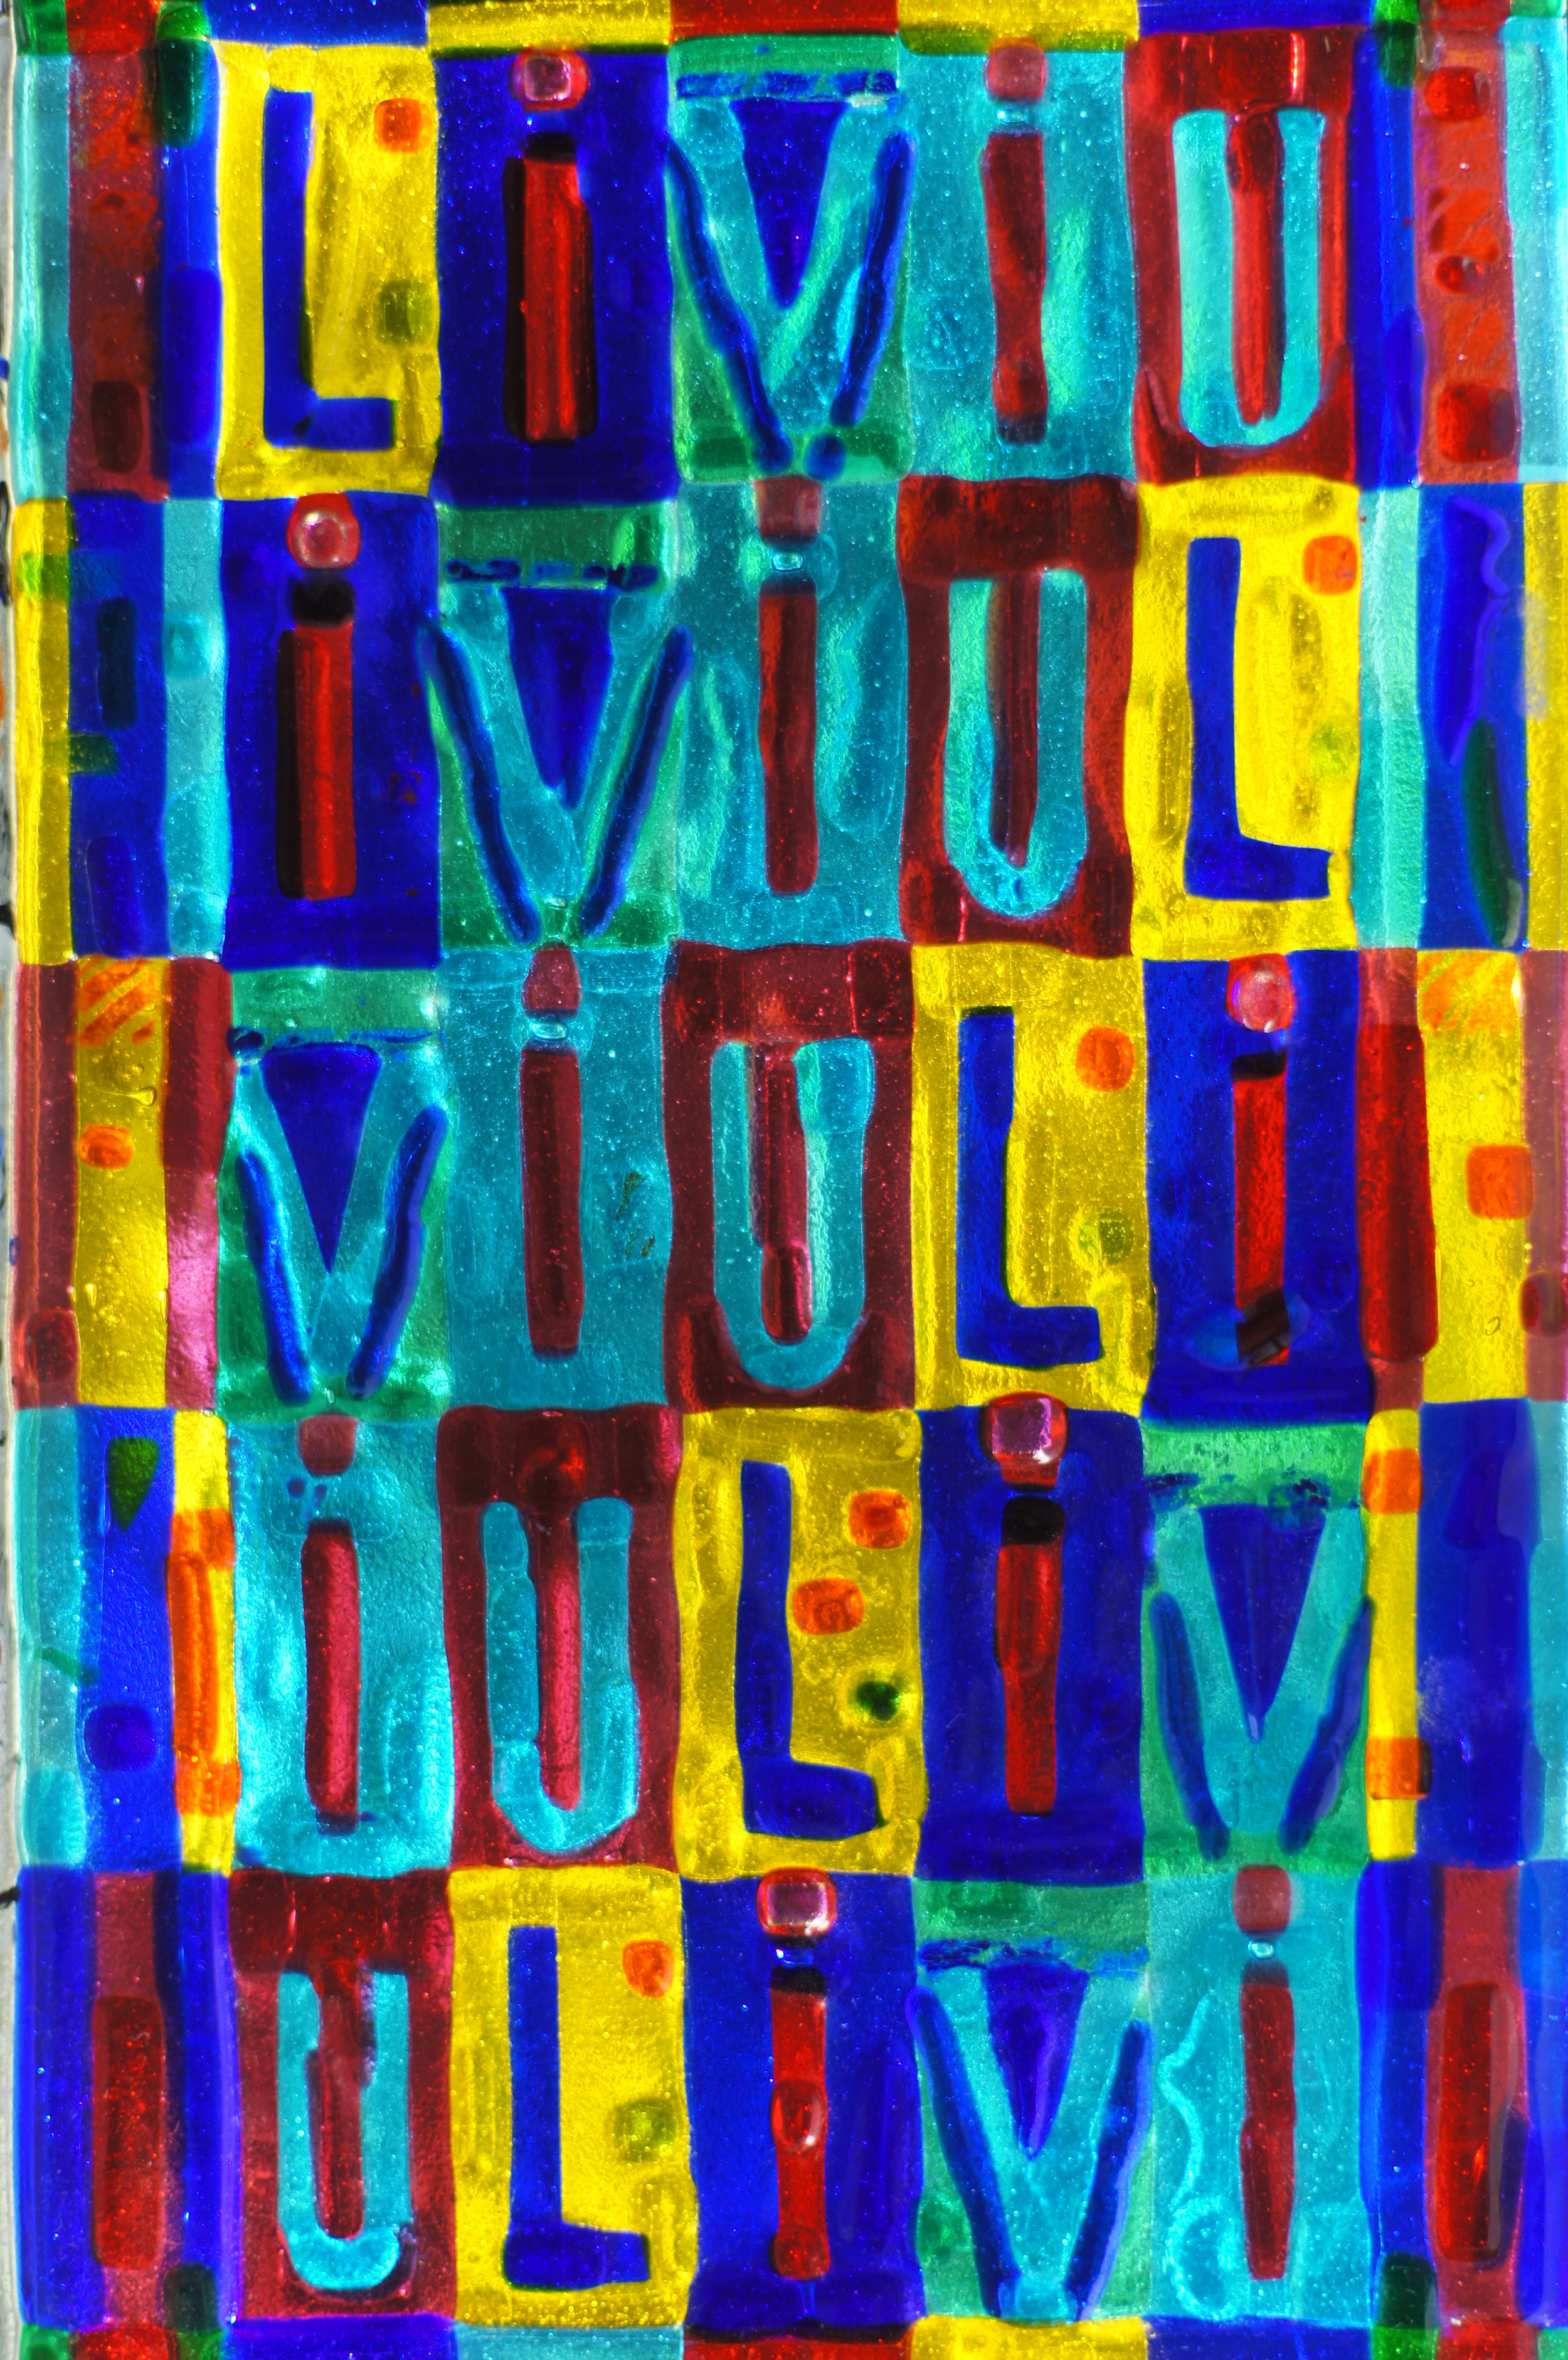 Play on the letters 'Liviu,' which are rotated around.     2010    Fused glass.